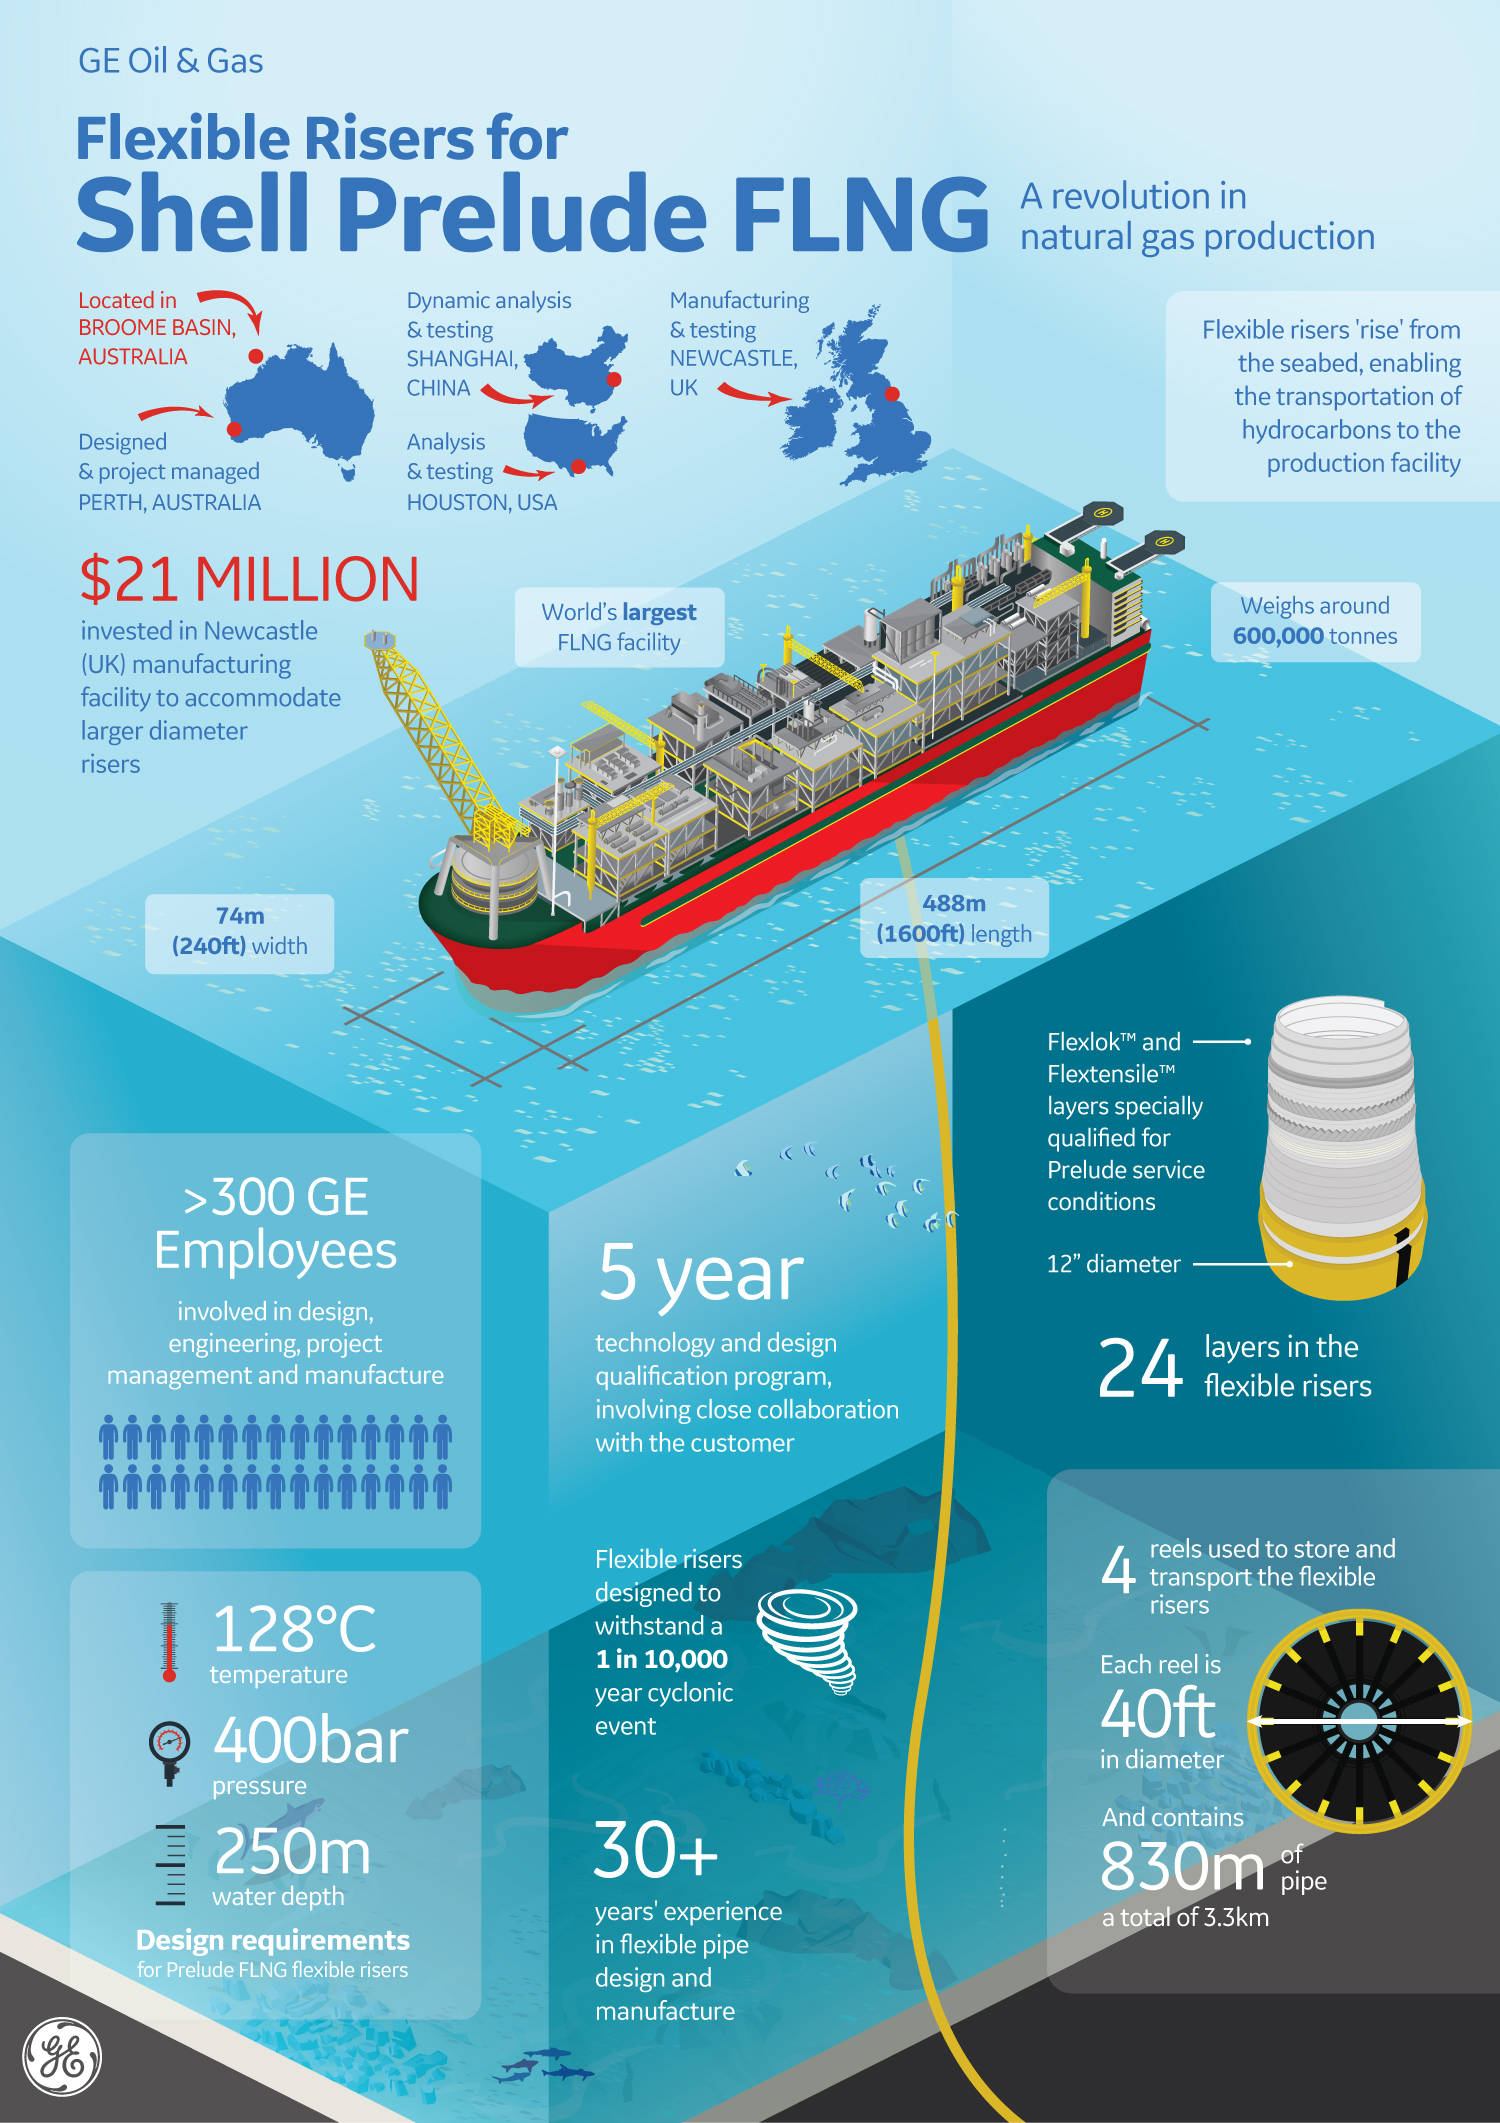 Flexible Risers for Shell Prelude FLNG